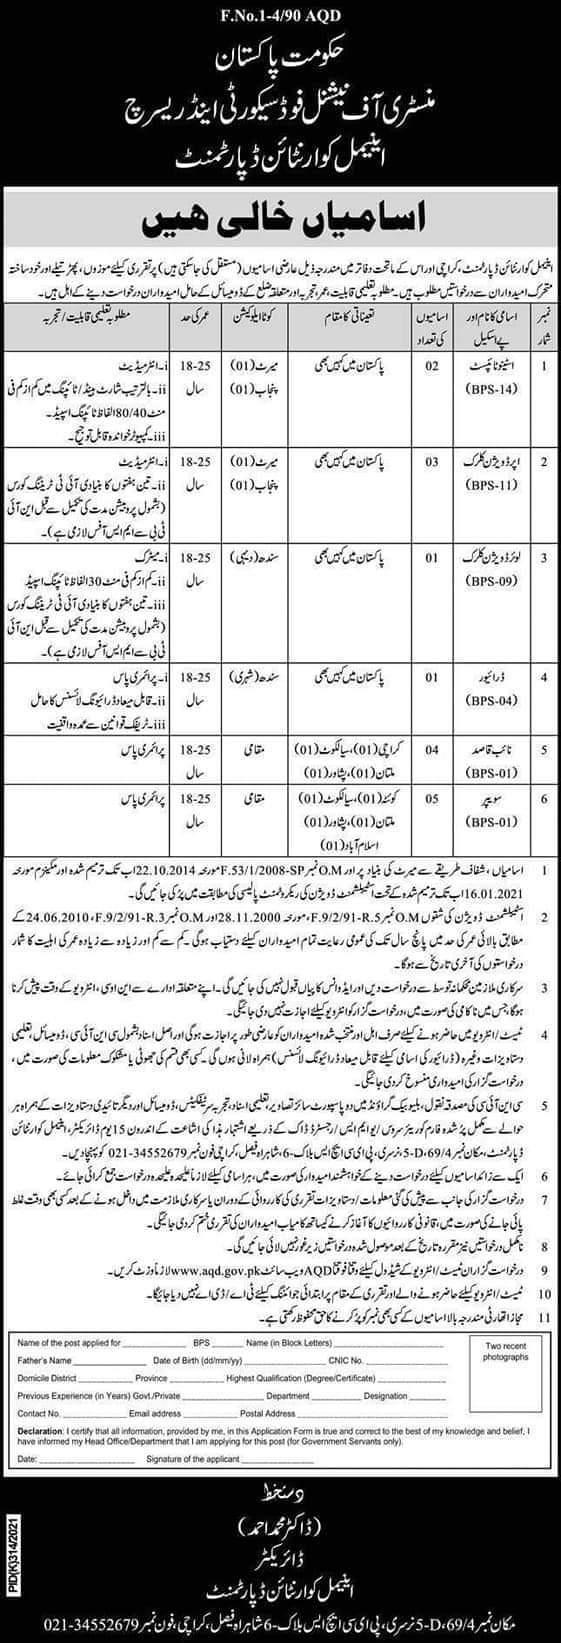 Ministry Of National Food Security And Research MNFSR Jobs 2021